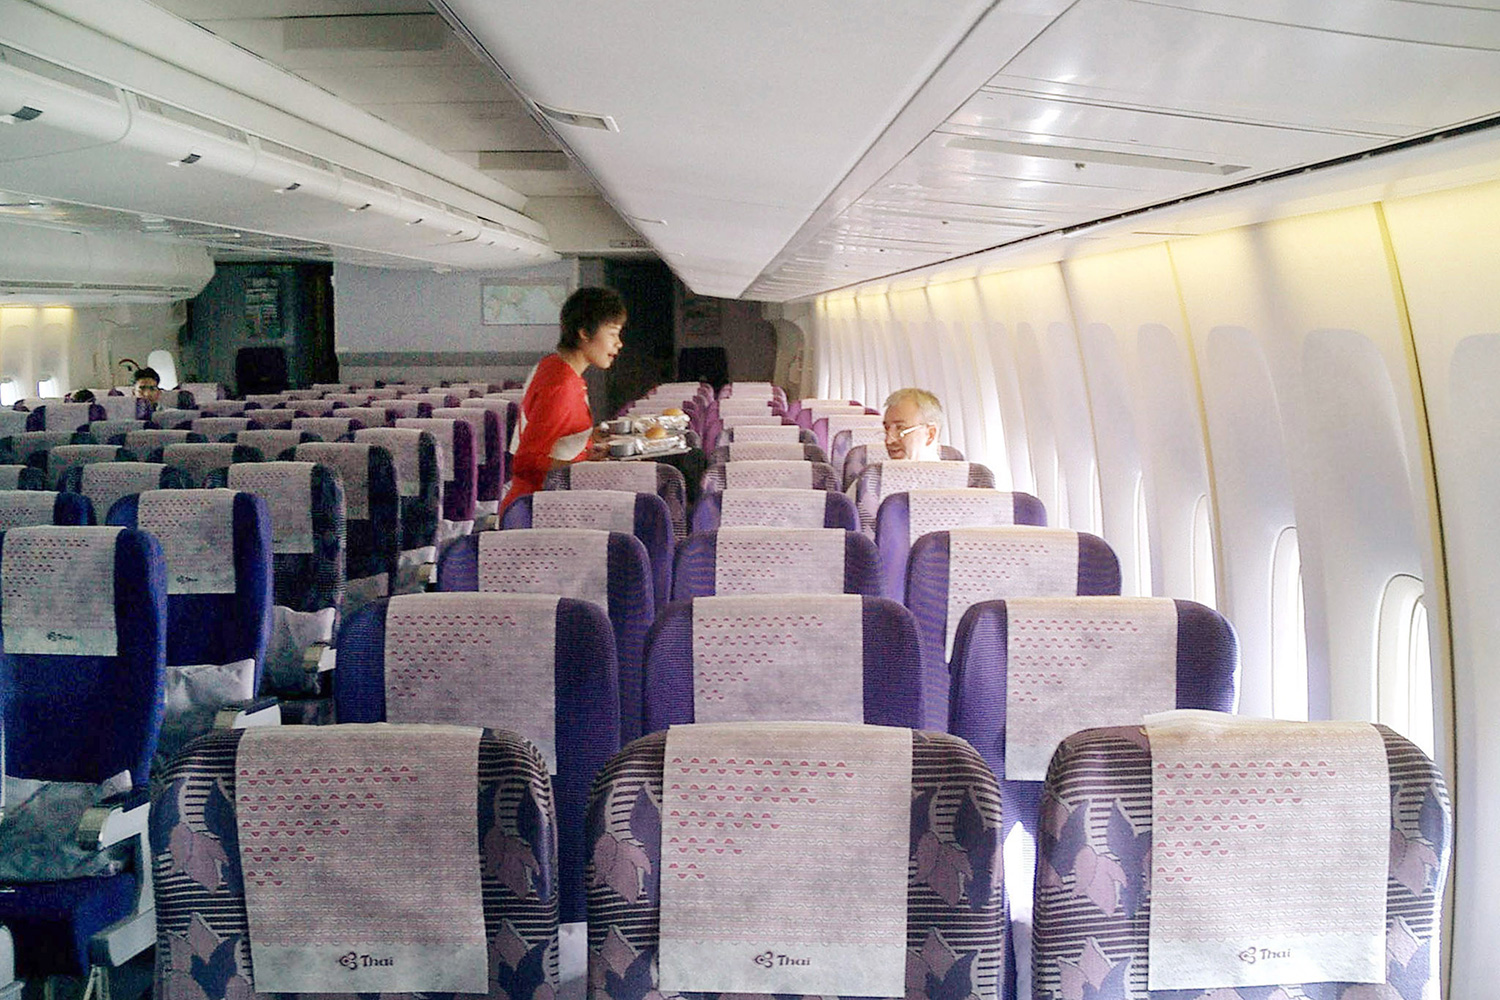 Photo shows an almost empty plane.